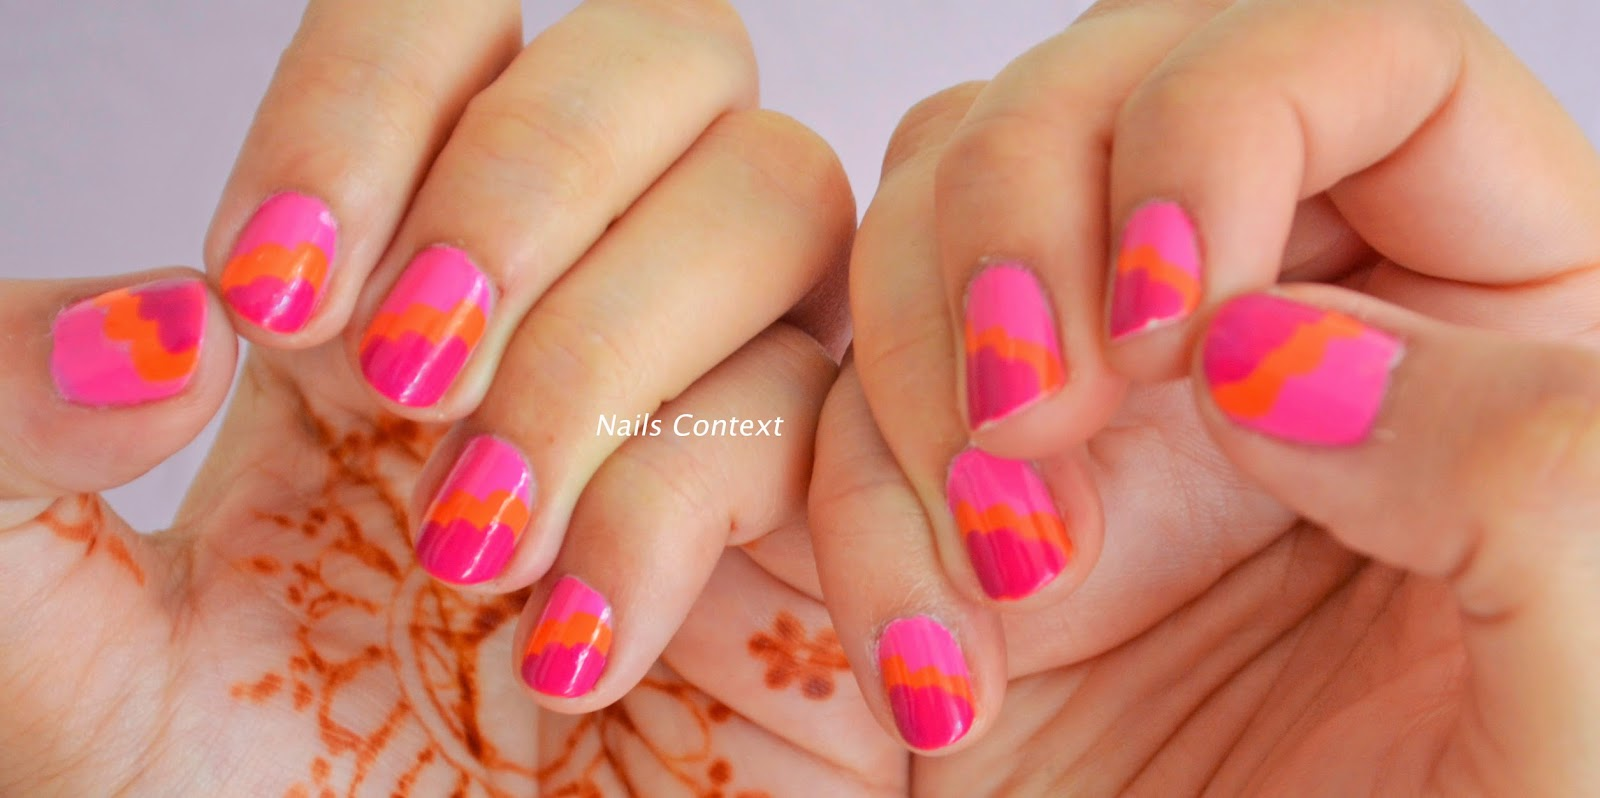 Nails context may 2017 you can see my previous cloud mani nail arts here here and here the polishes that i have used for this nail art are revlons cupid and plum seduction prinsesfo Images